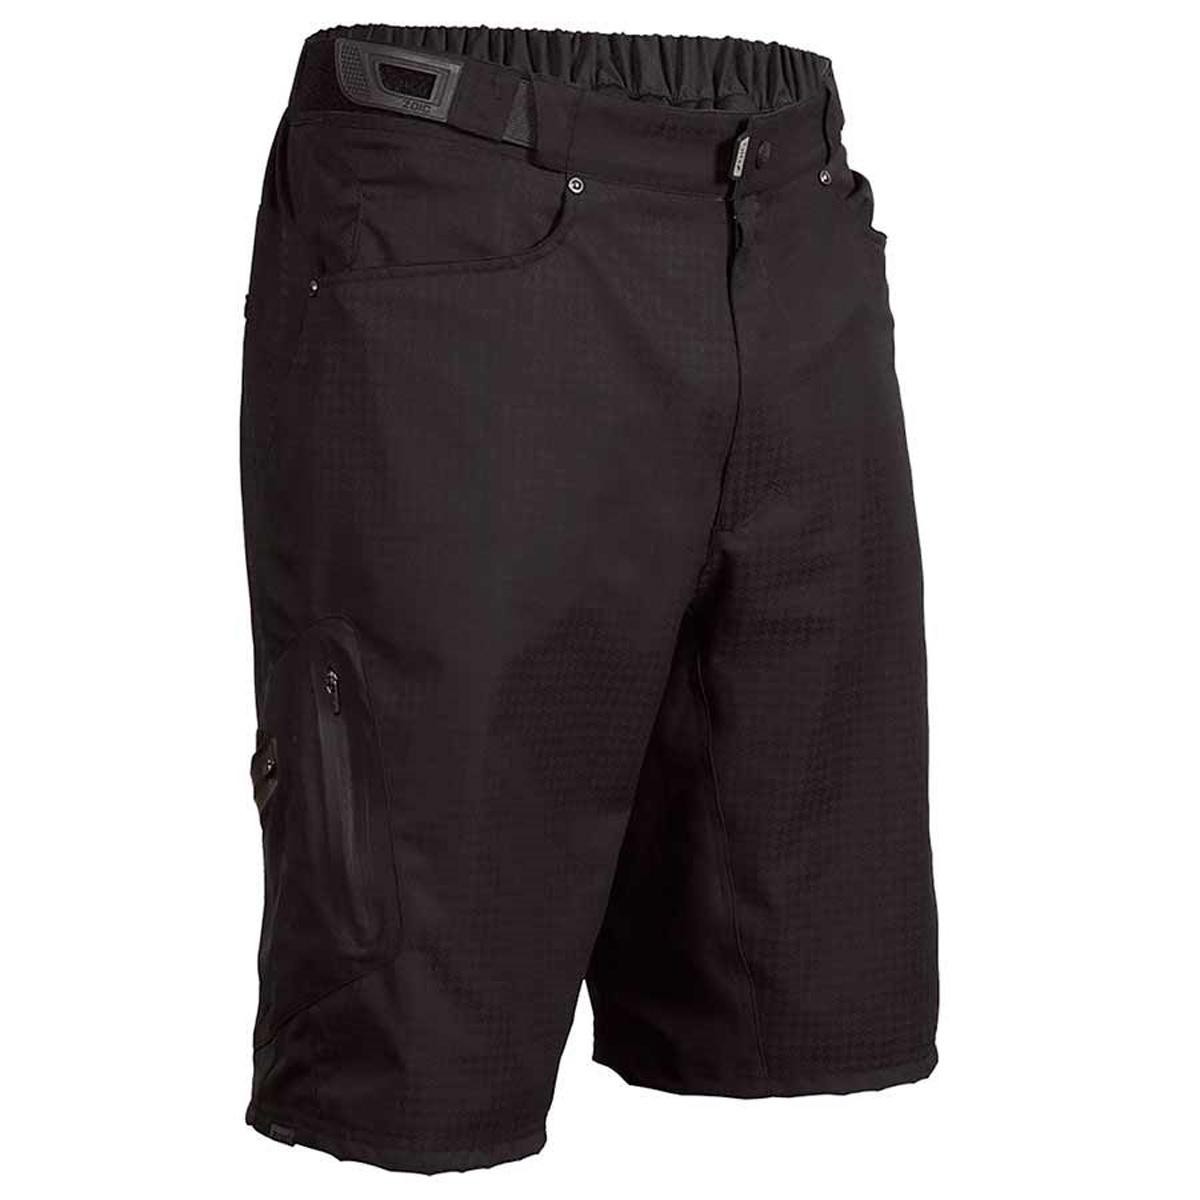 Zoic Men's Ether Plaid Cycling Shorts - 1123ZEN5